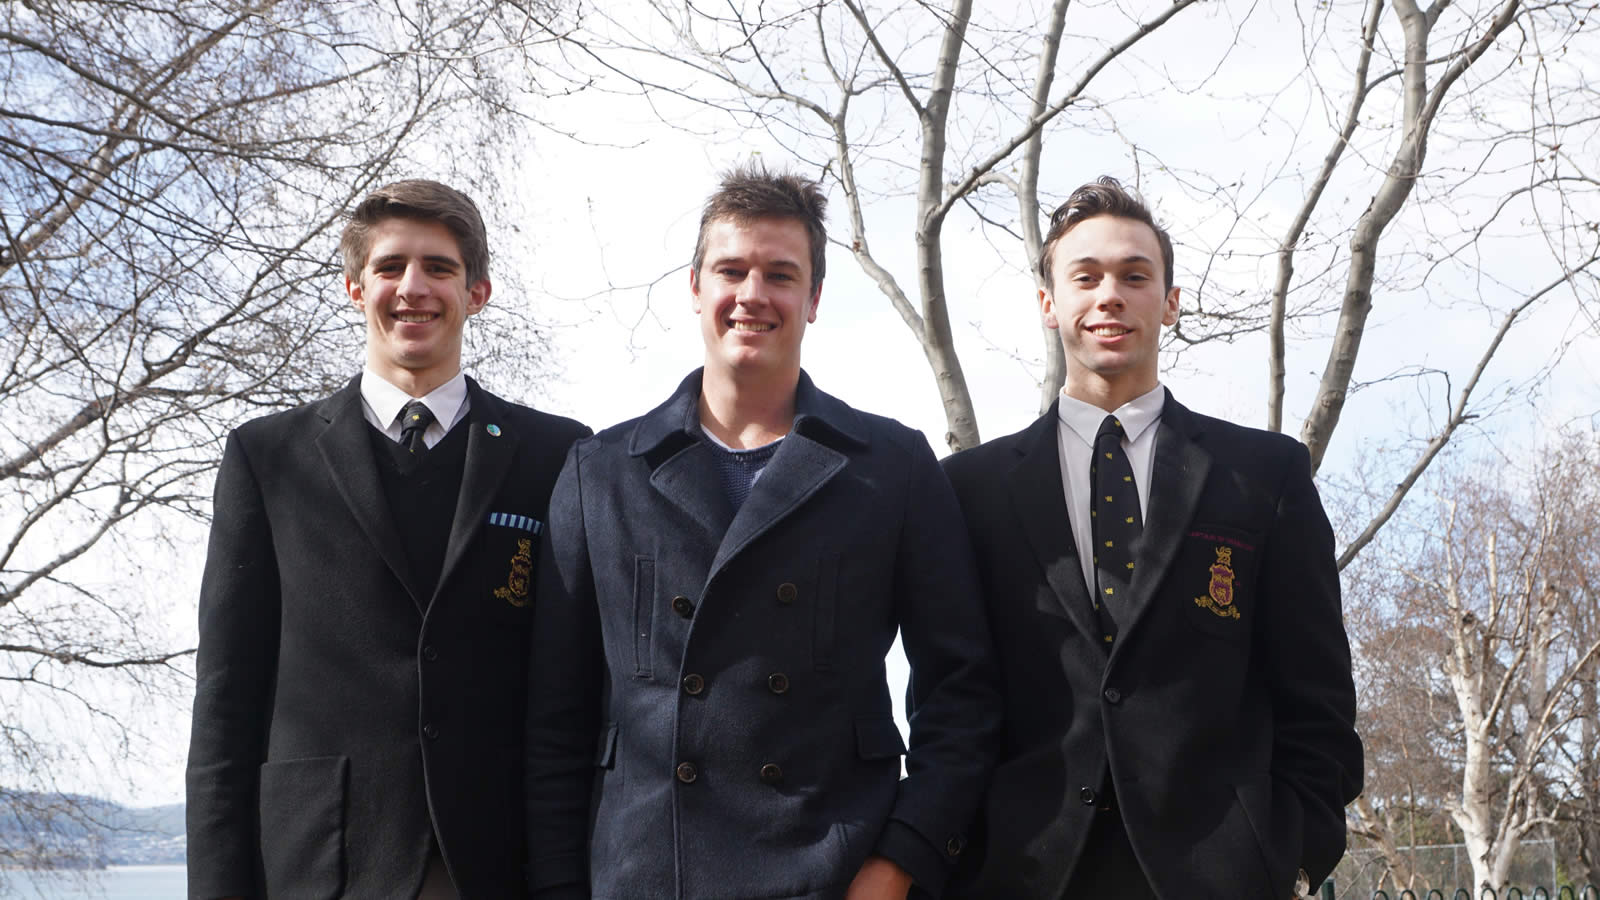 Tom is pictured with Year 12 students Angus Calvert and Michael Young.